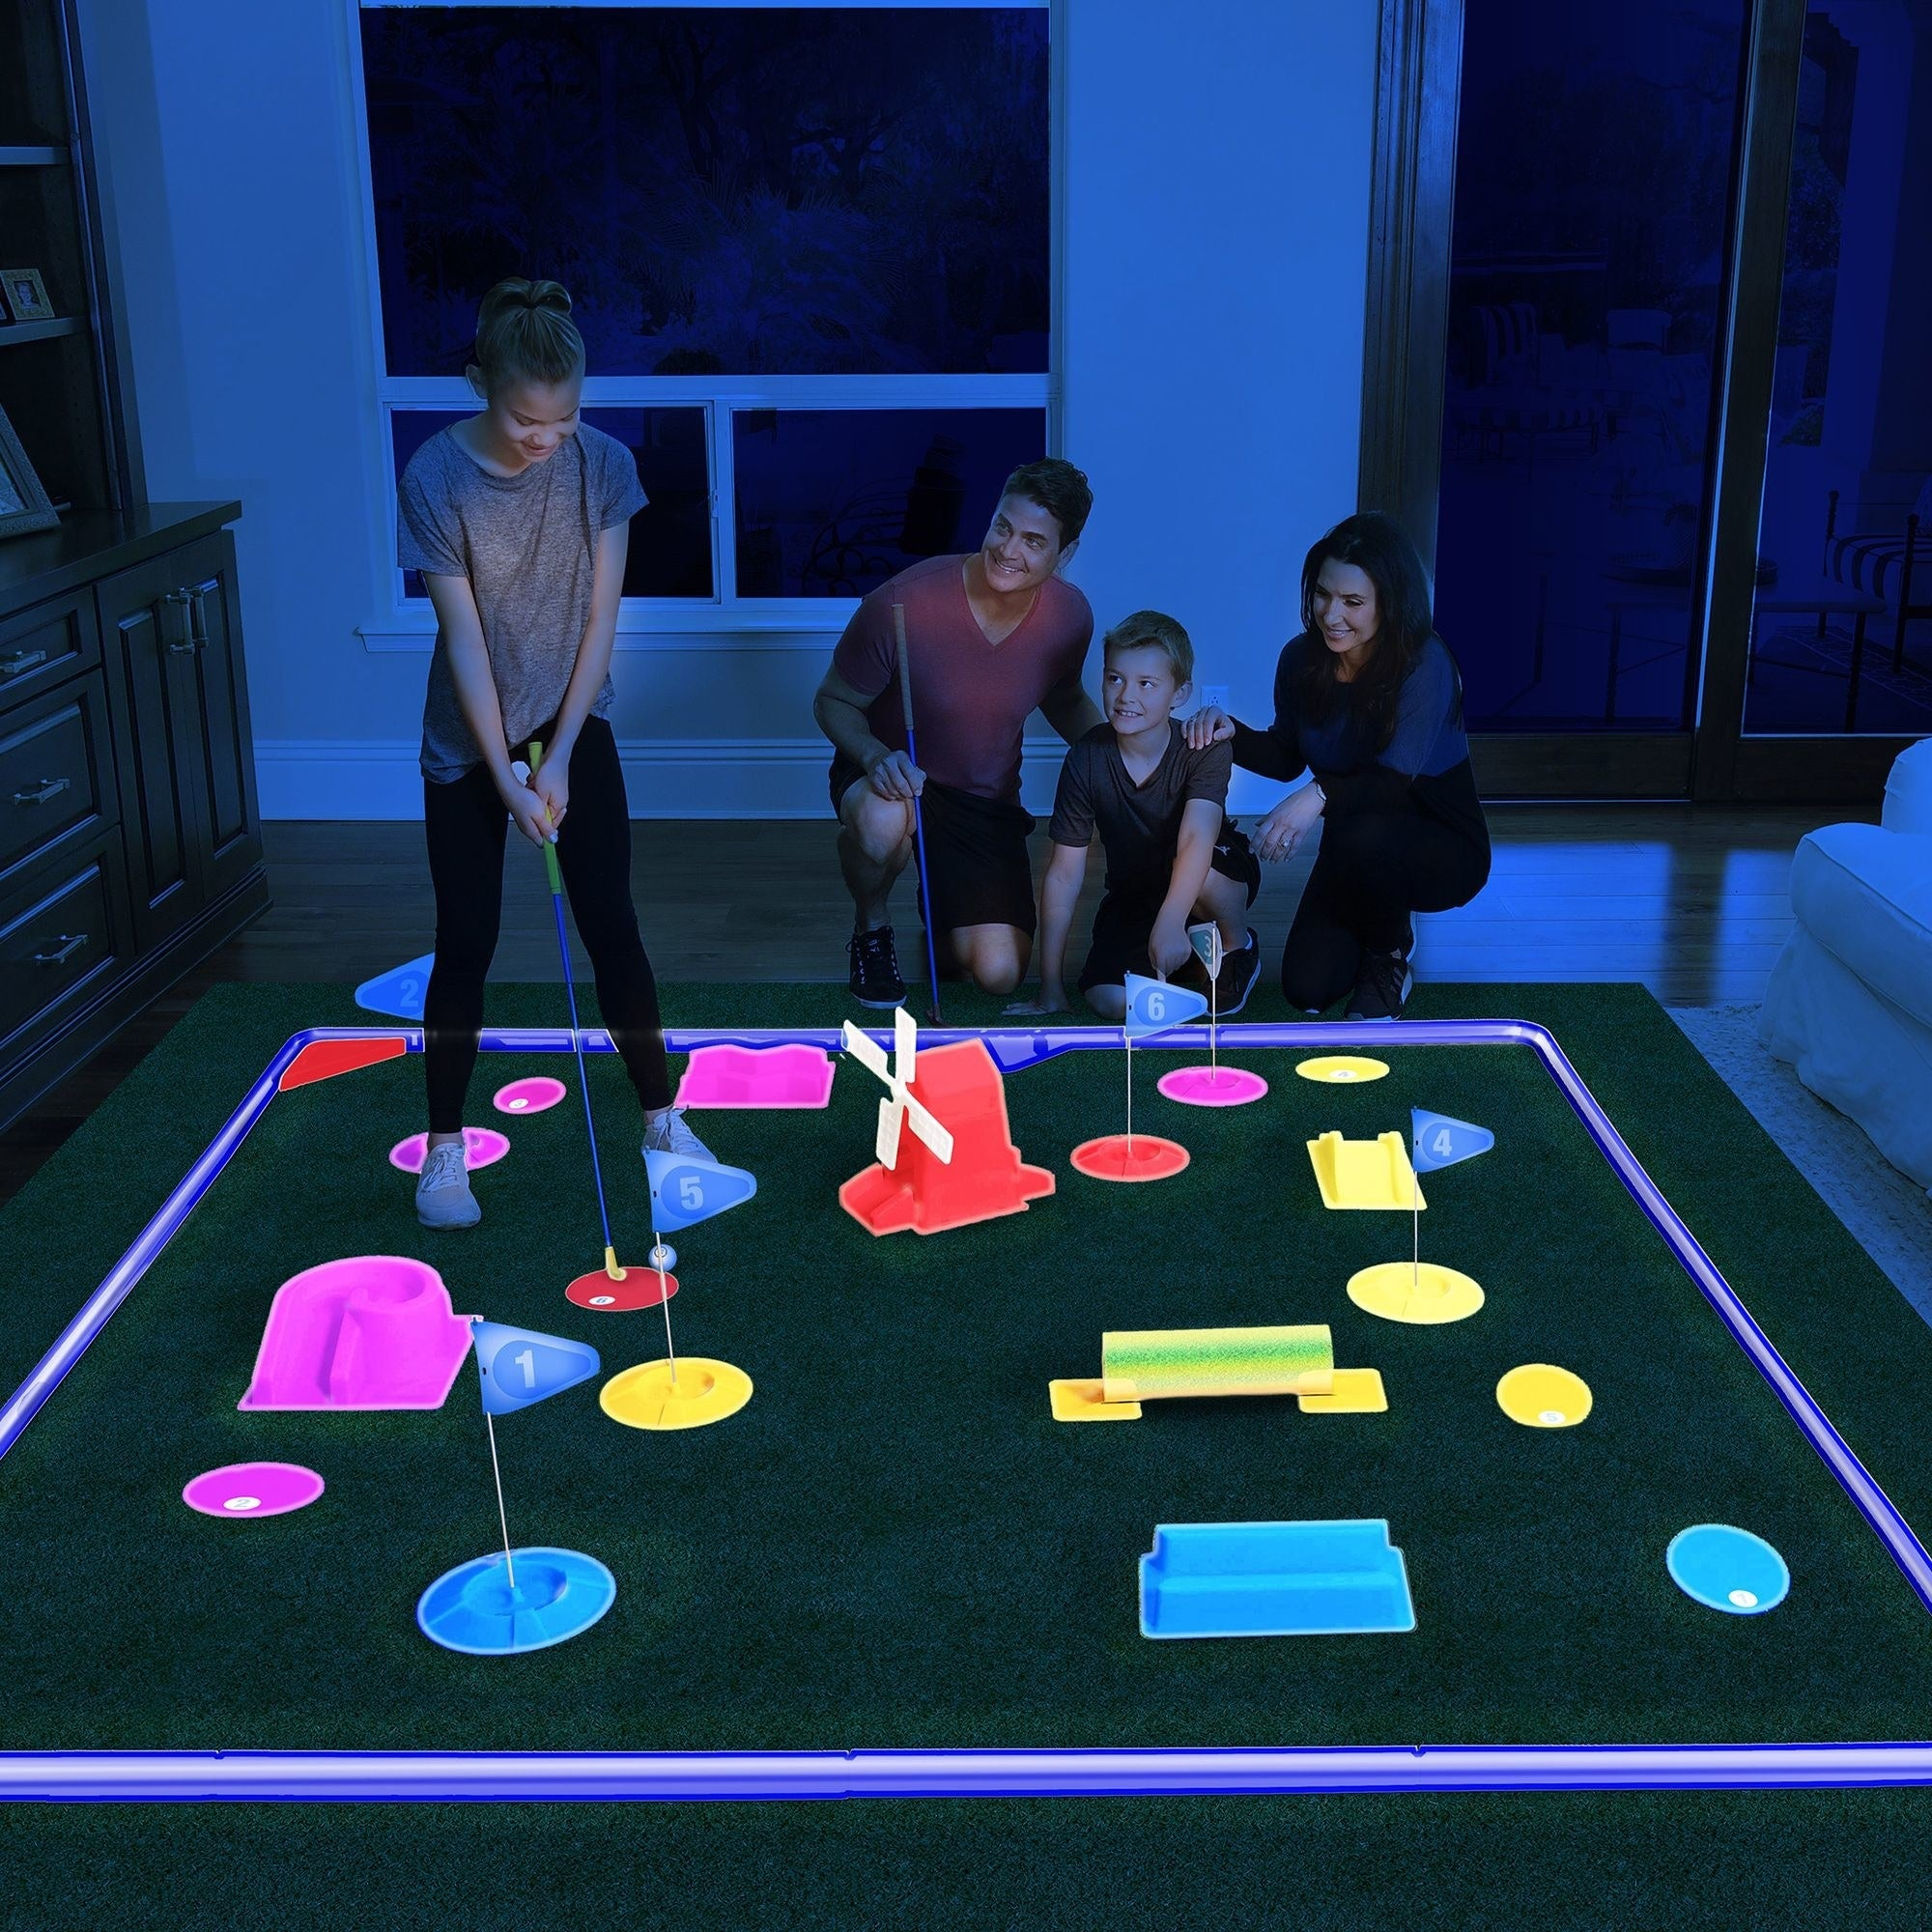 a family playing with the golf set in the dark indoors